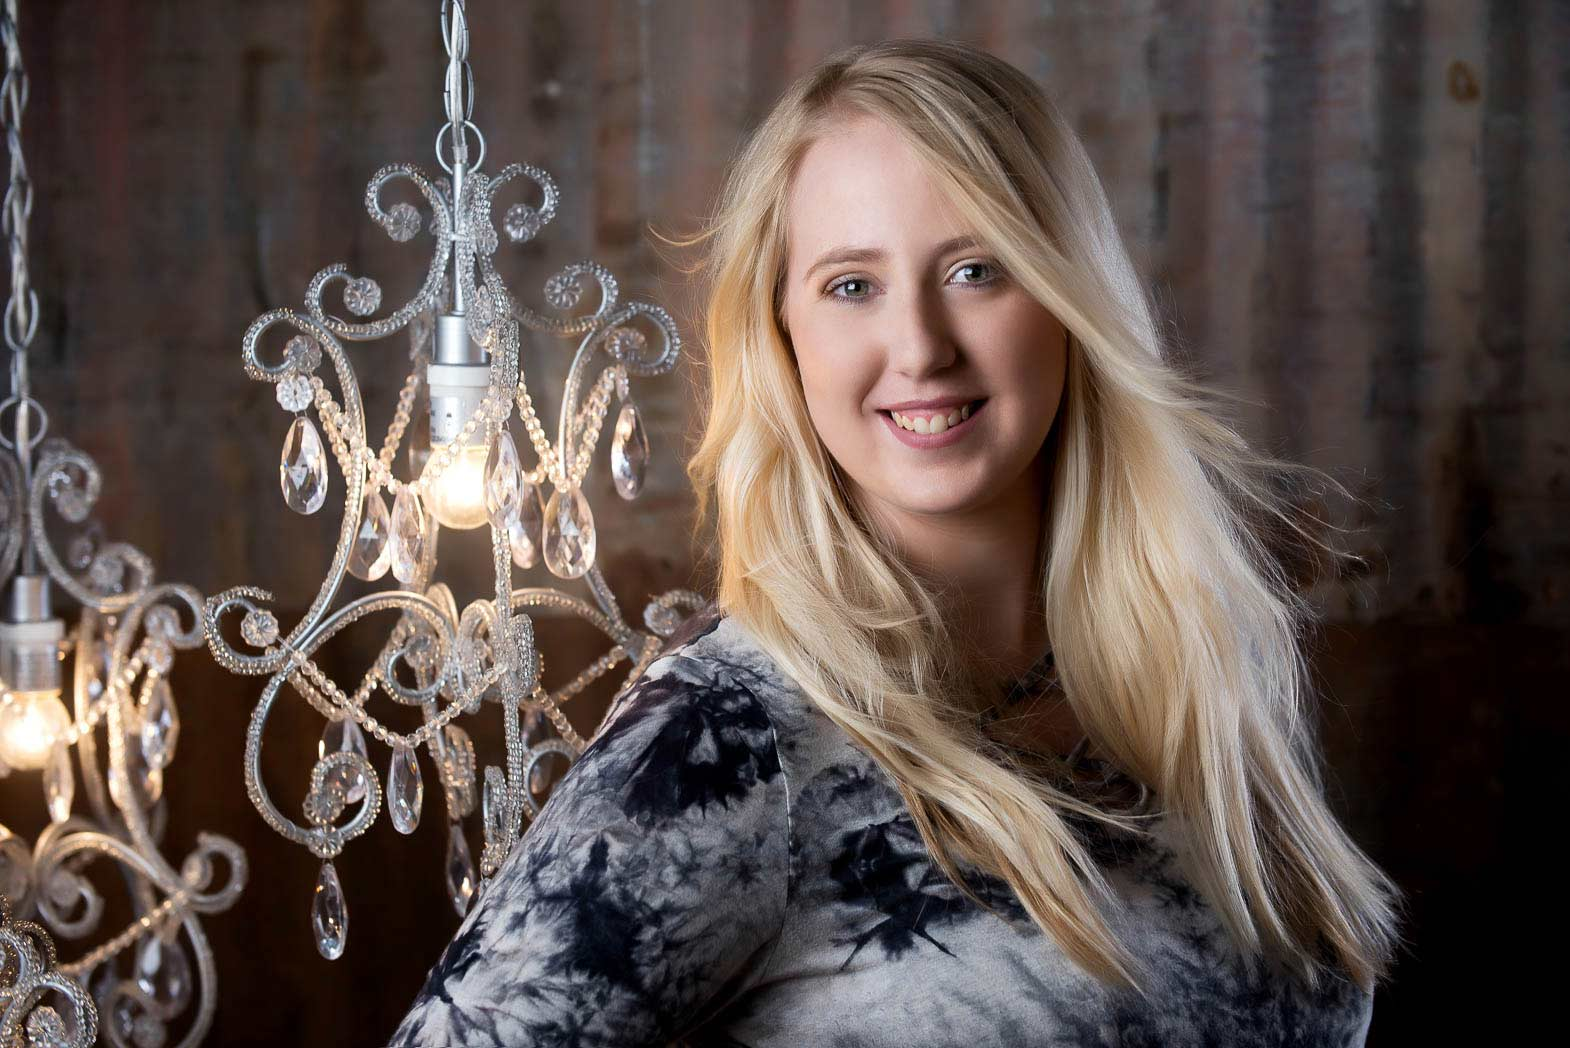 studio senior portrait of smiling girl standing in front of chandeliers